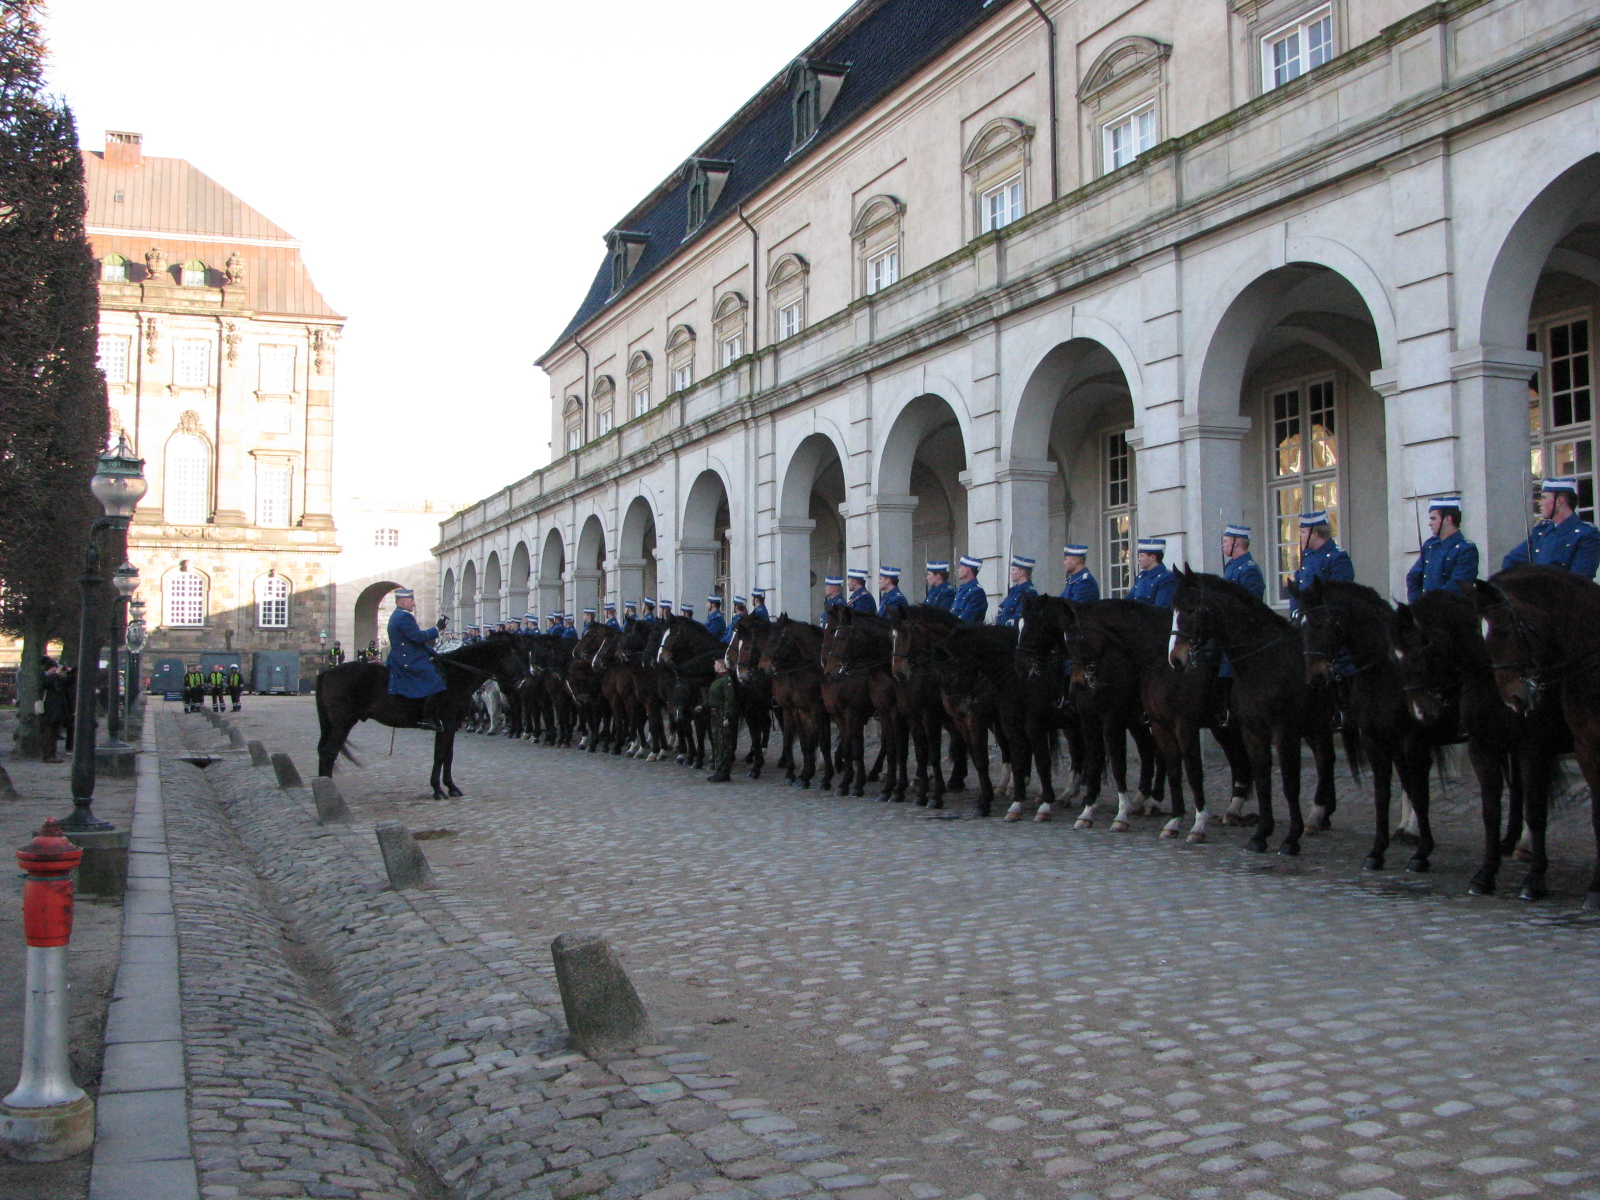 The mounted Gard Hussar Squadron in front of the Royal Stables at Christiansborg Palace. Last briefing before departure.